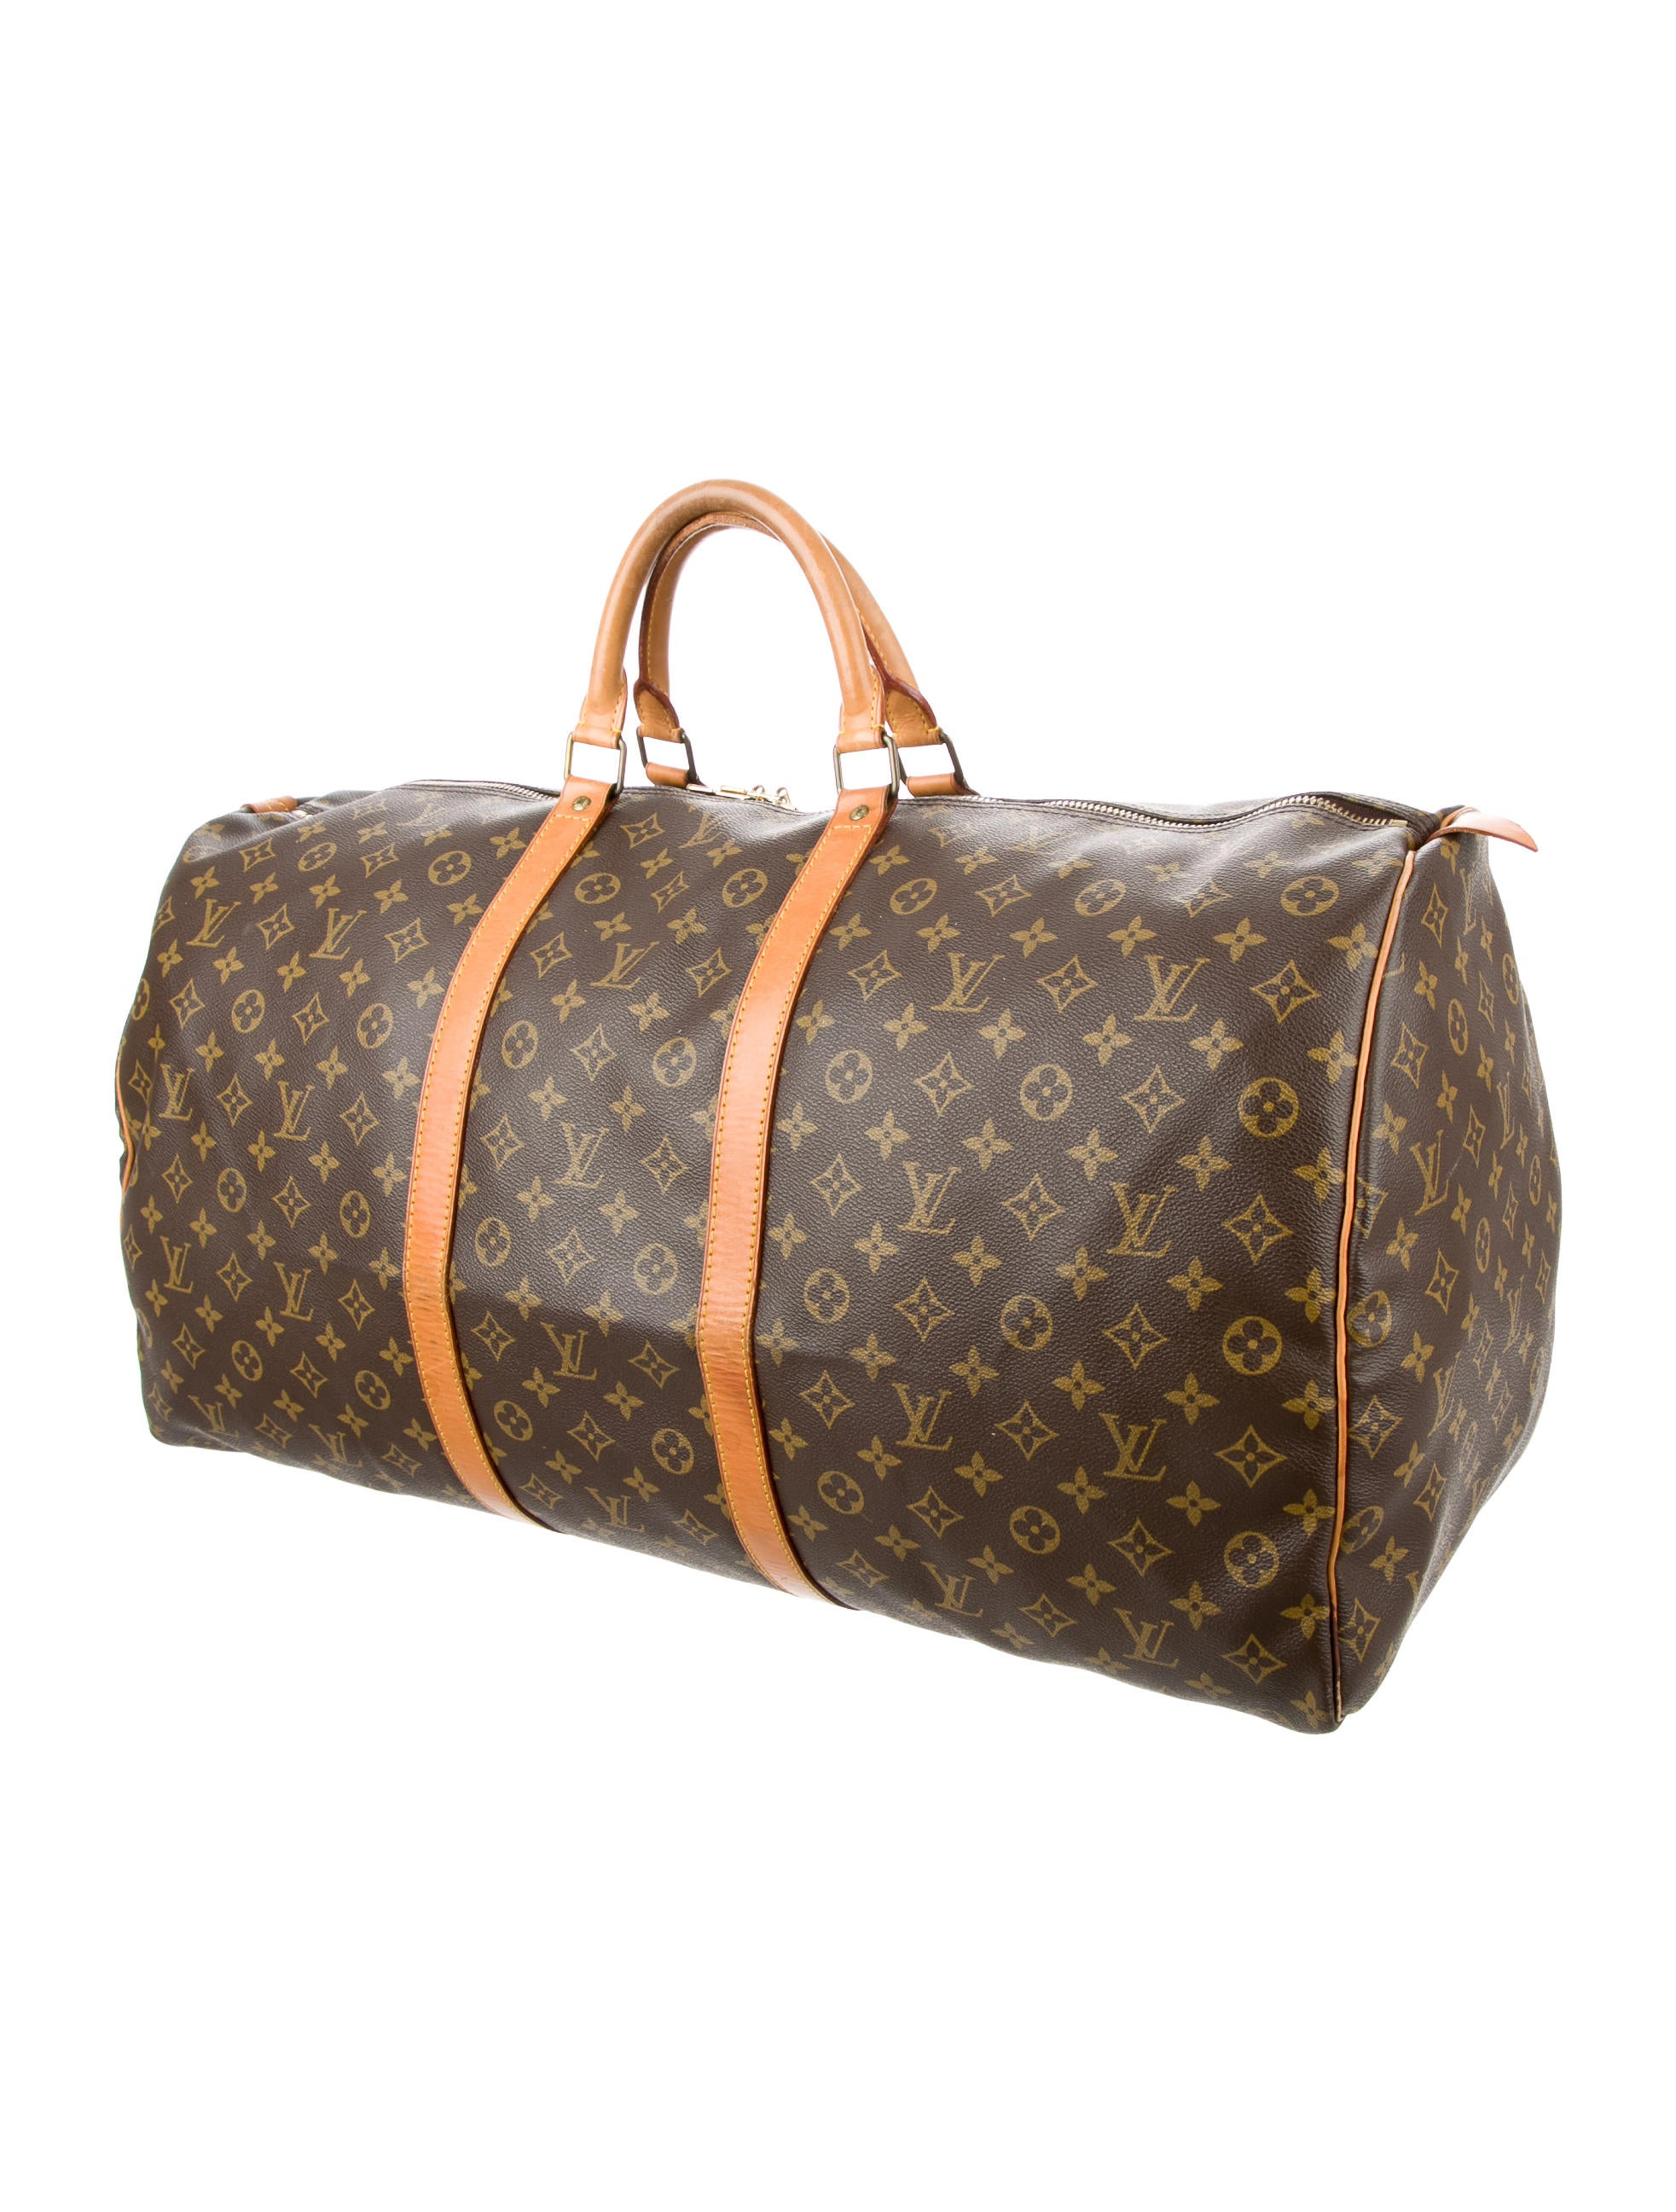 louis vuitton monogram keepall 50 handbags lou106480 the realreal. Black Bedroom Furniture Sets. Home Design Ideas